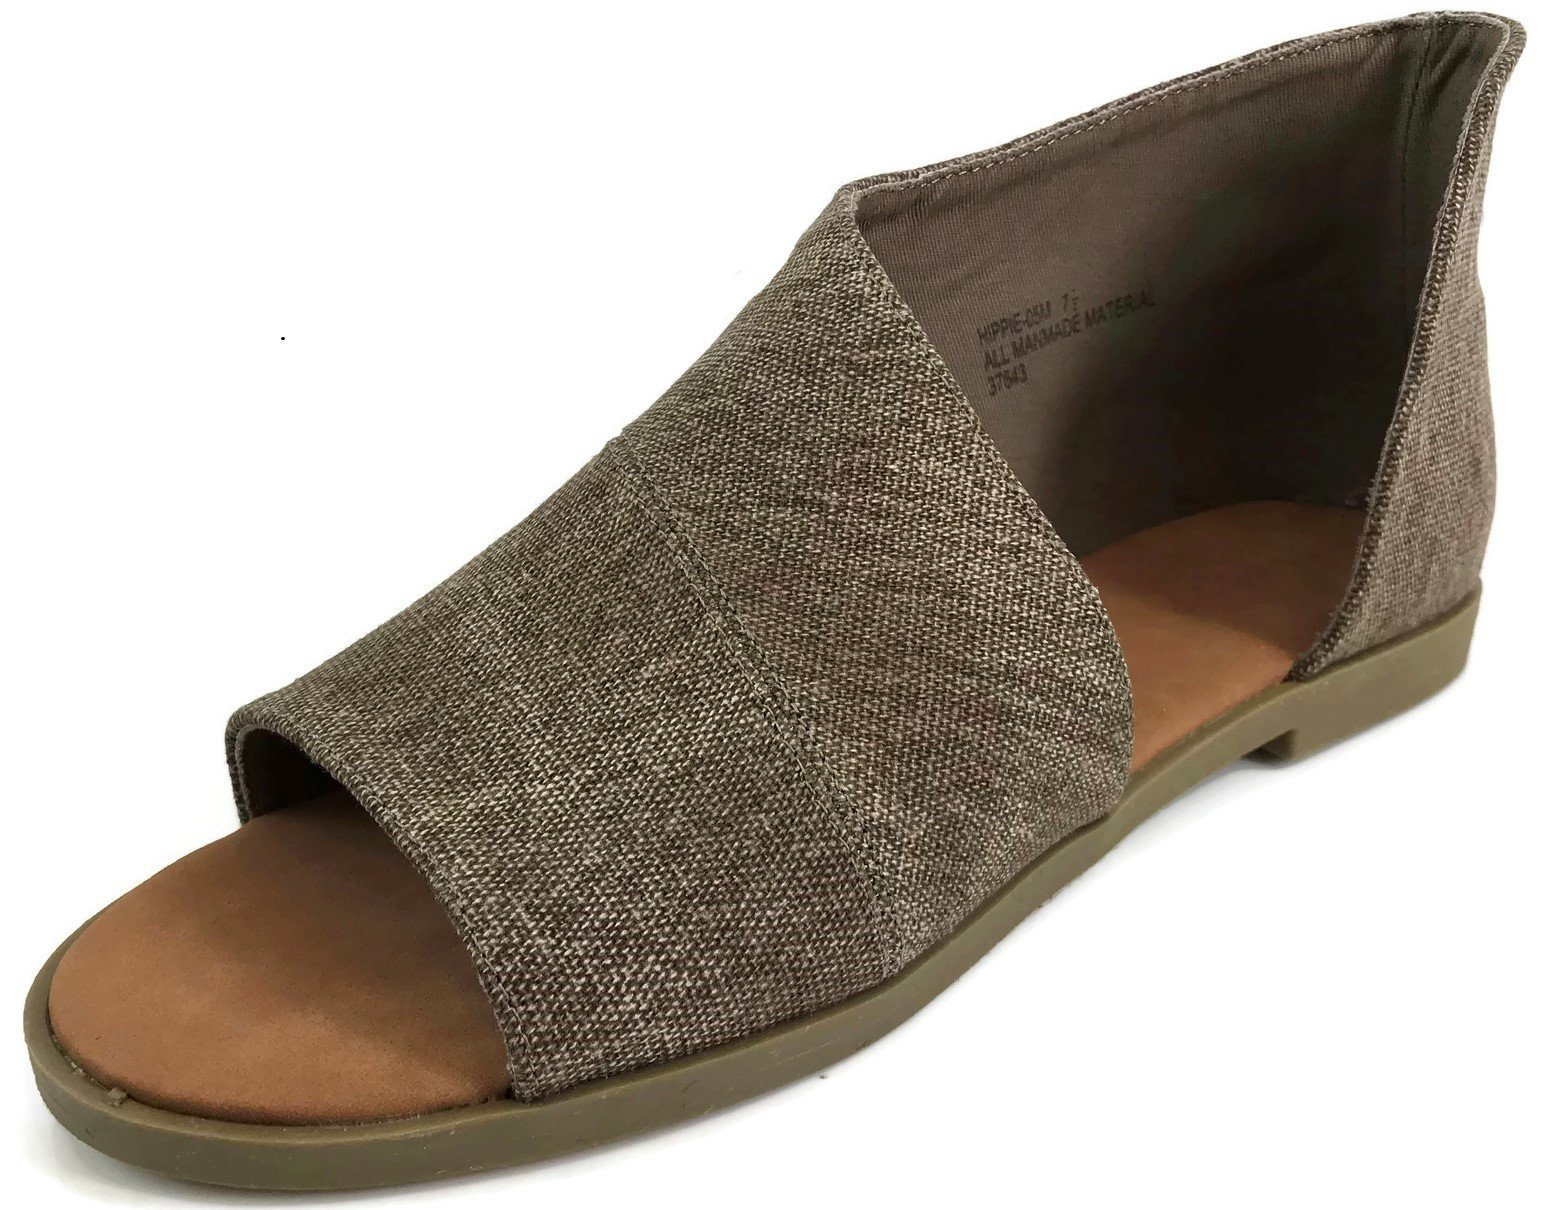 Bamboo Fashion Women's Faux Leather Asymmetrical Sandal Open Toe Half D'Orsay Flats Heel, Taupe, 7.5